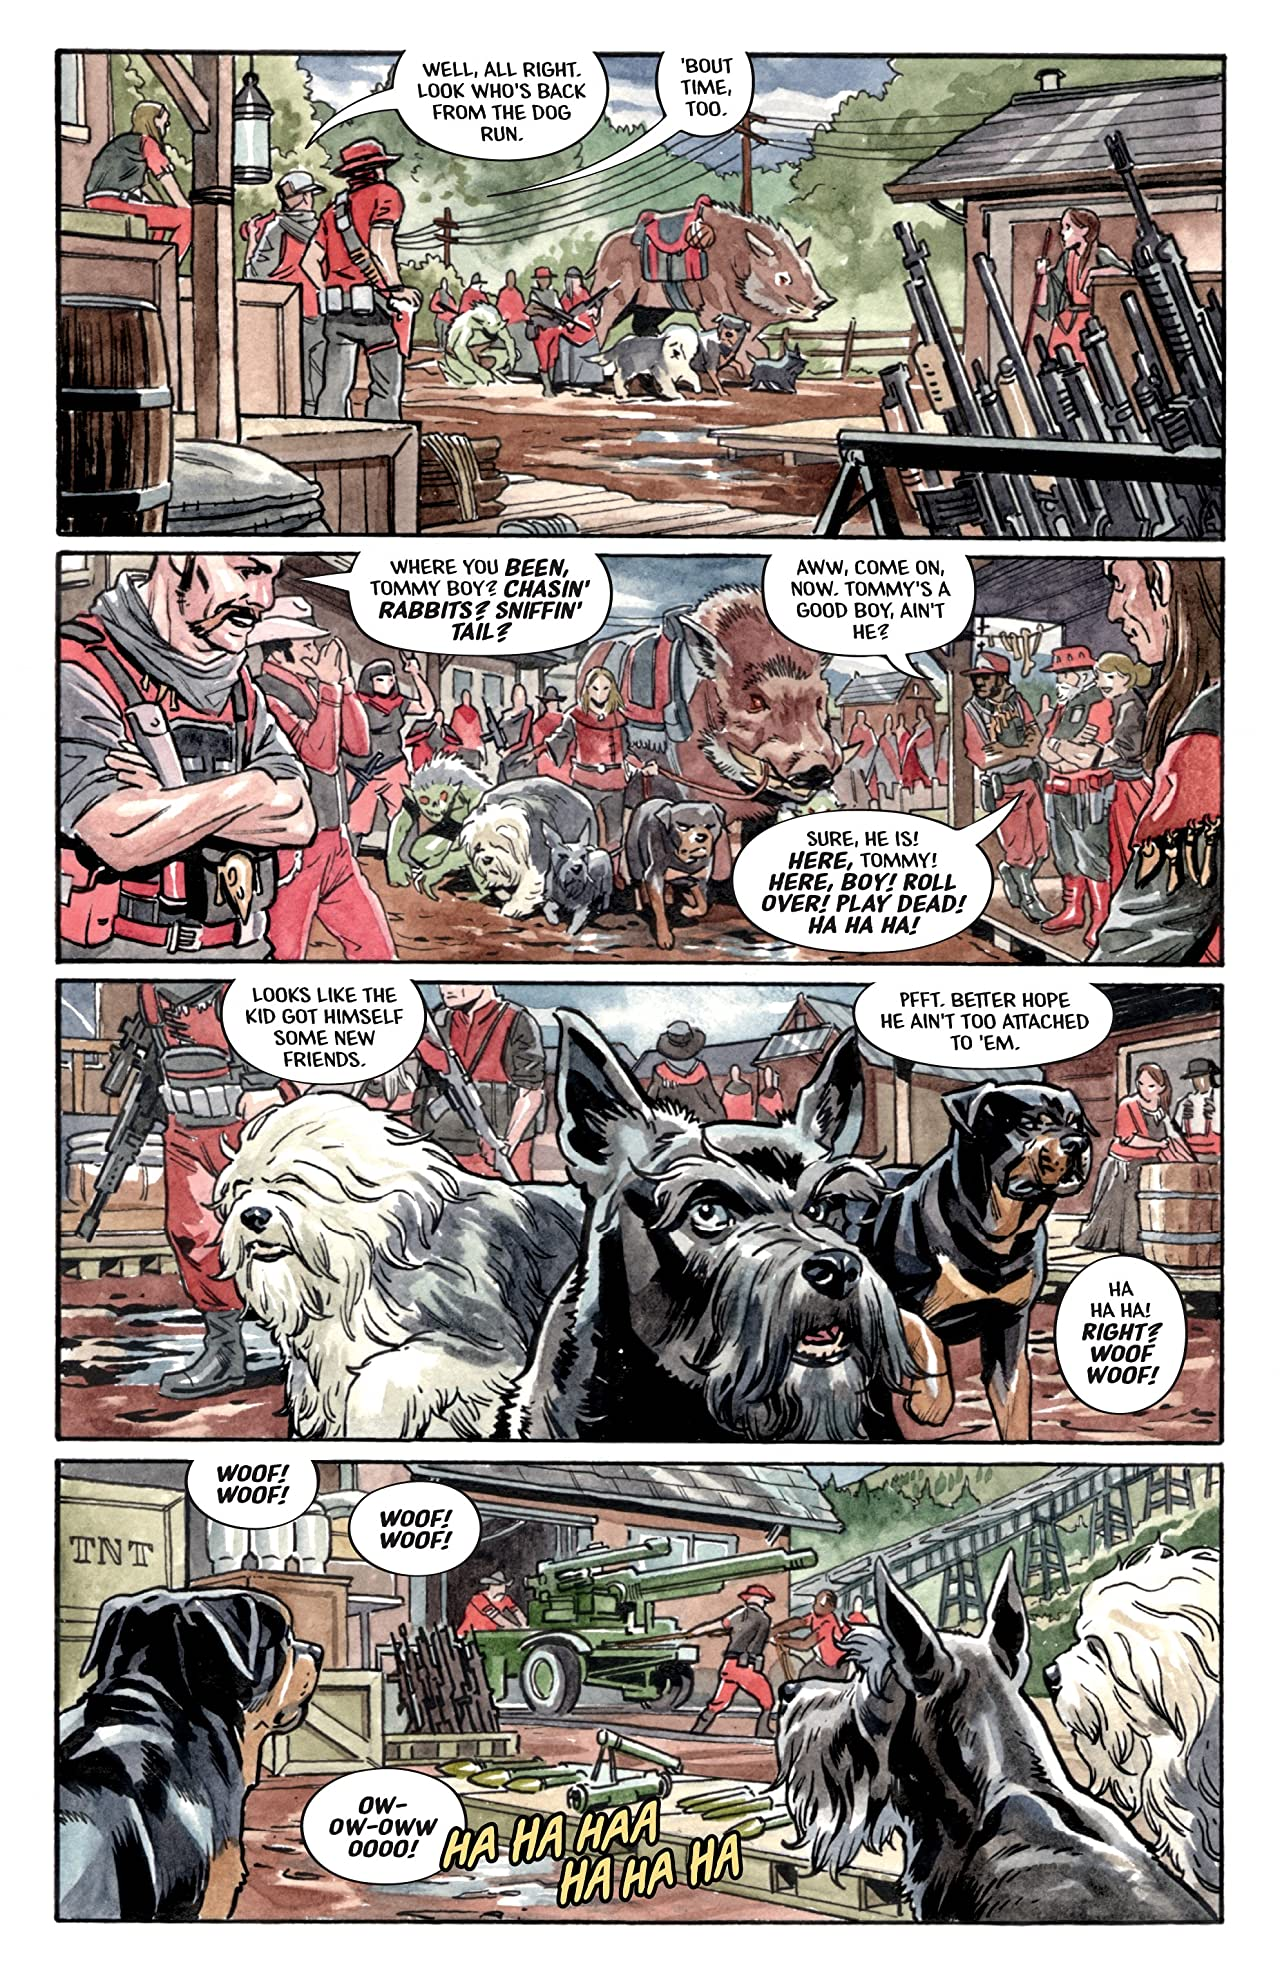 Beasts of Burden: Wise Dogs and Eldritch Men #4